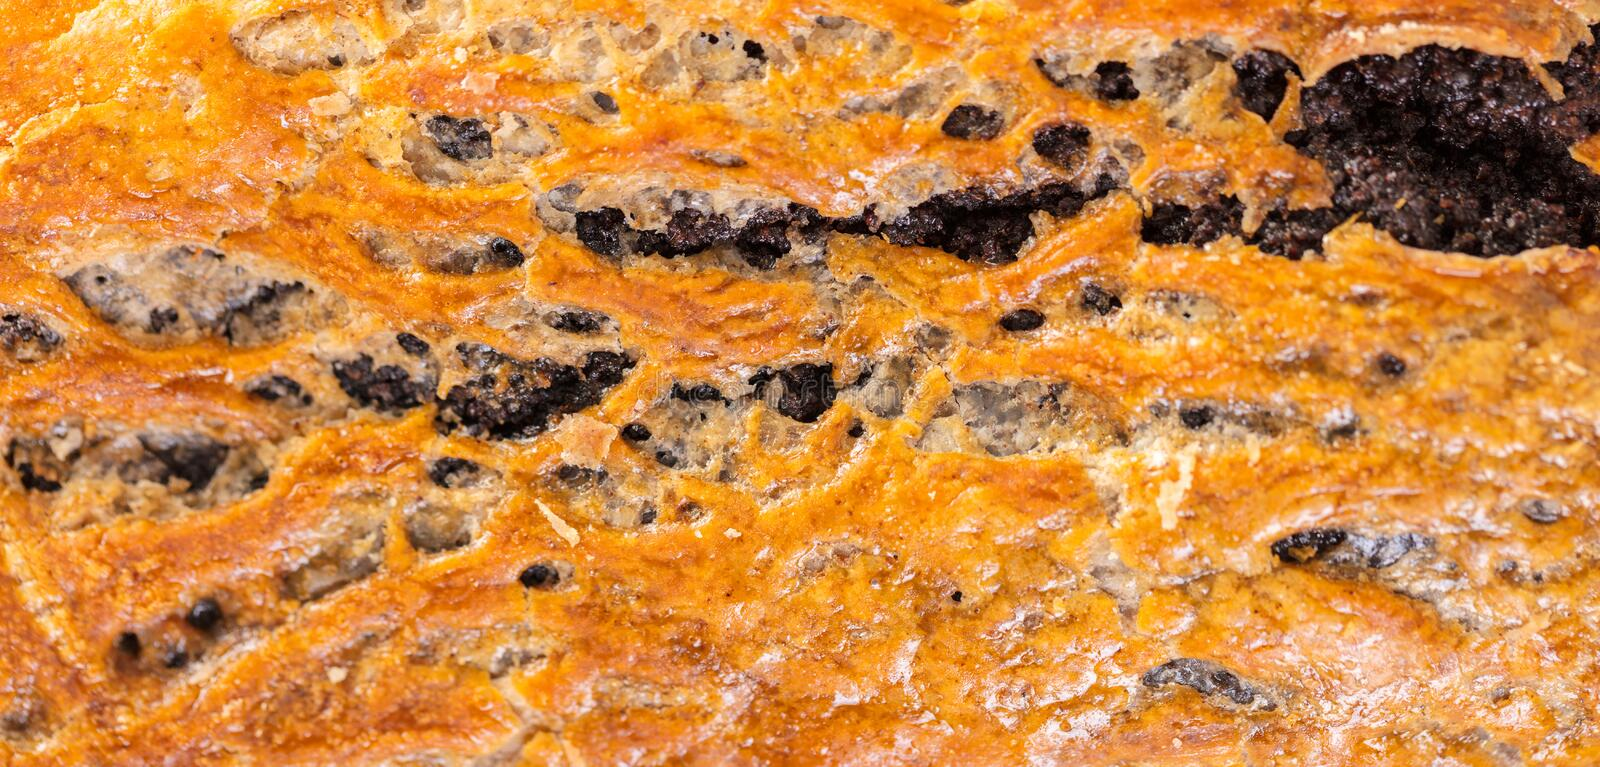 Baked strudel texture closeup royalty free stock photography